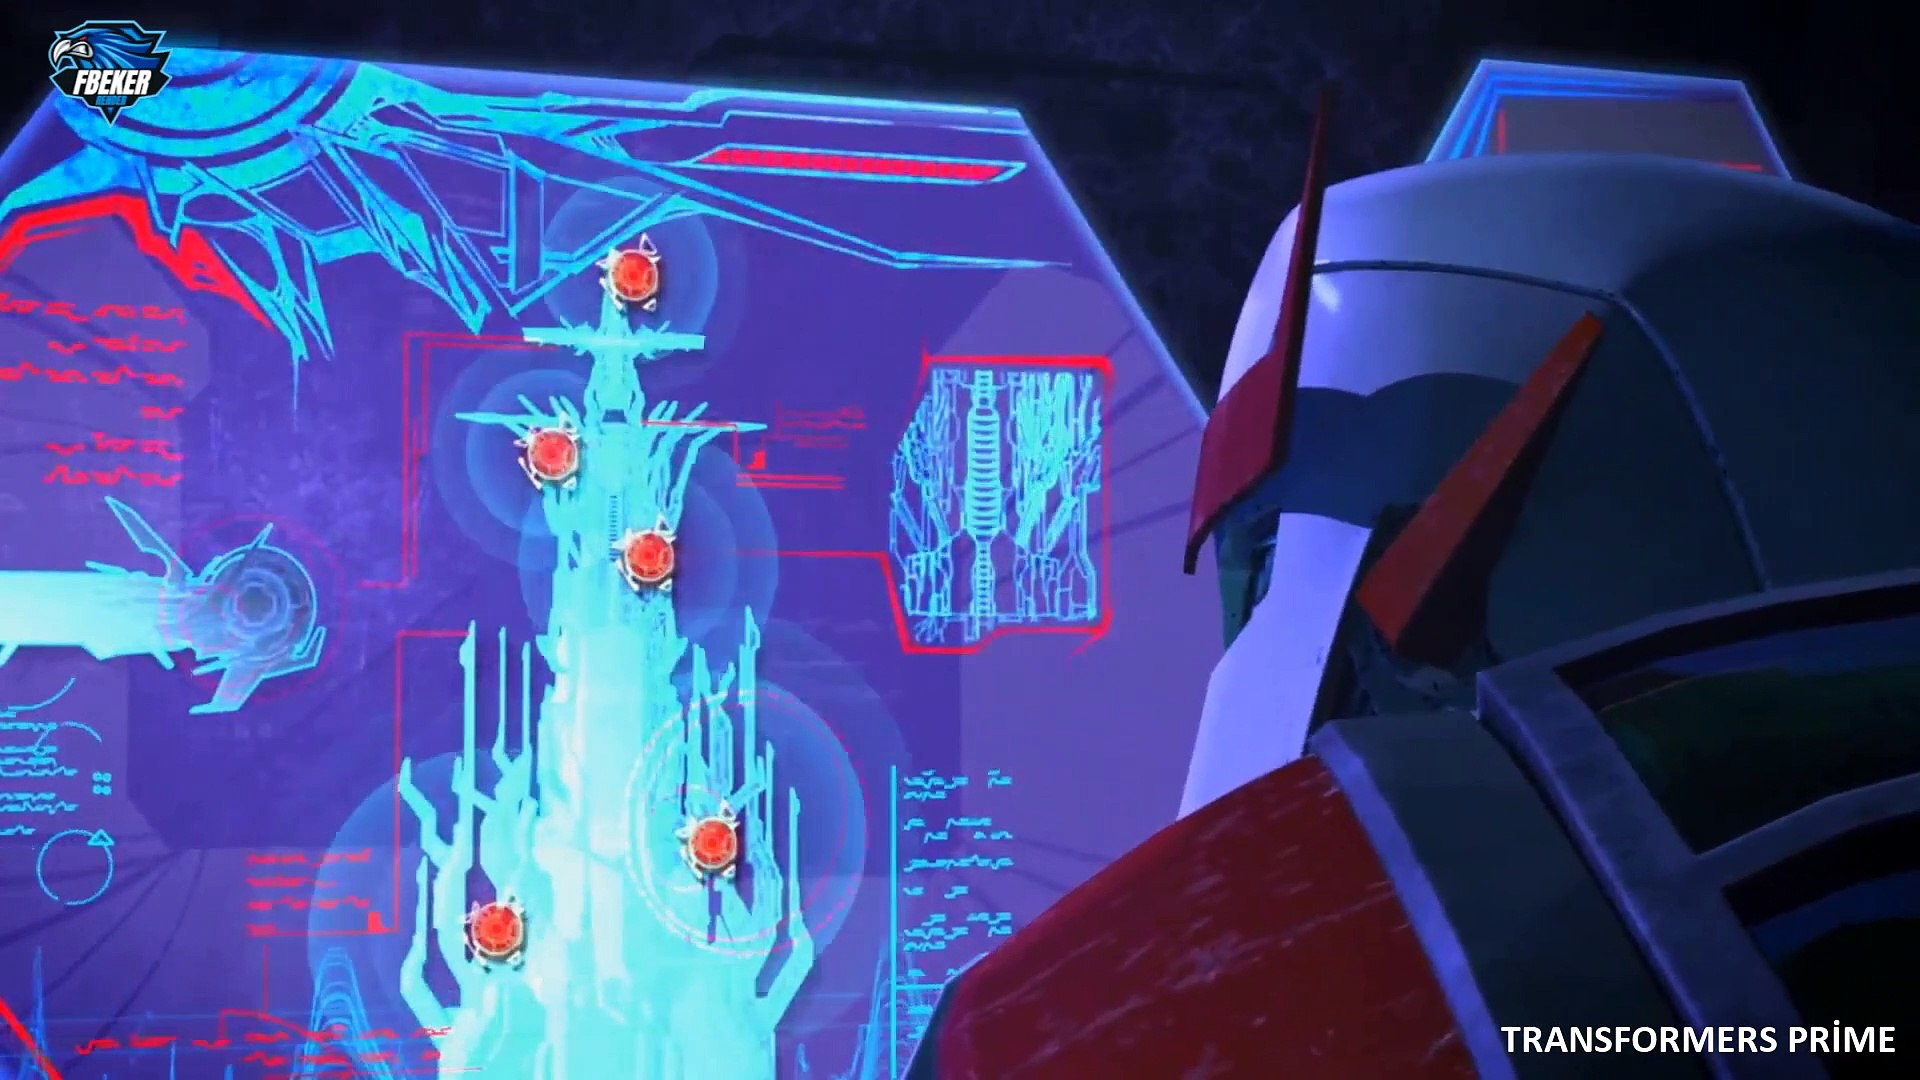 Transformers Prime 56.Bölüm İsyan Full Hd